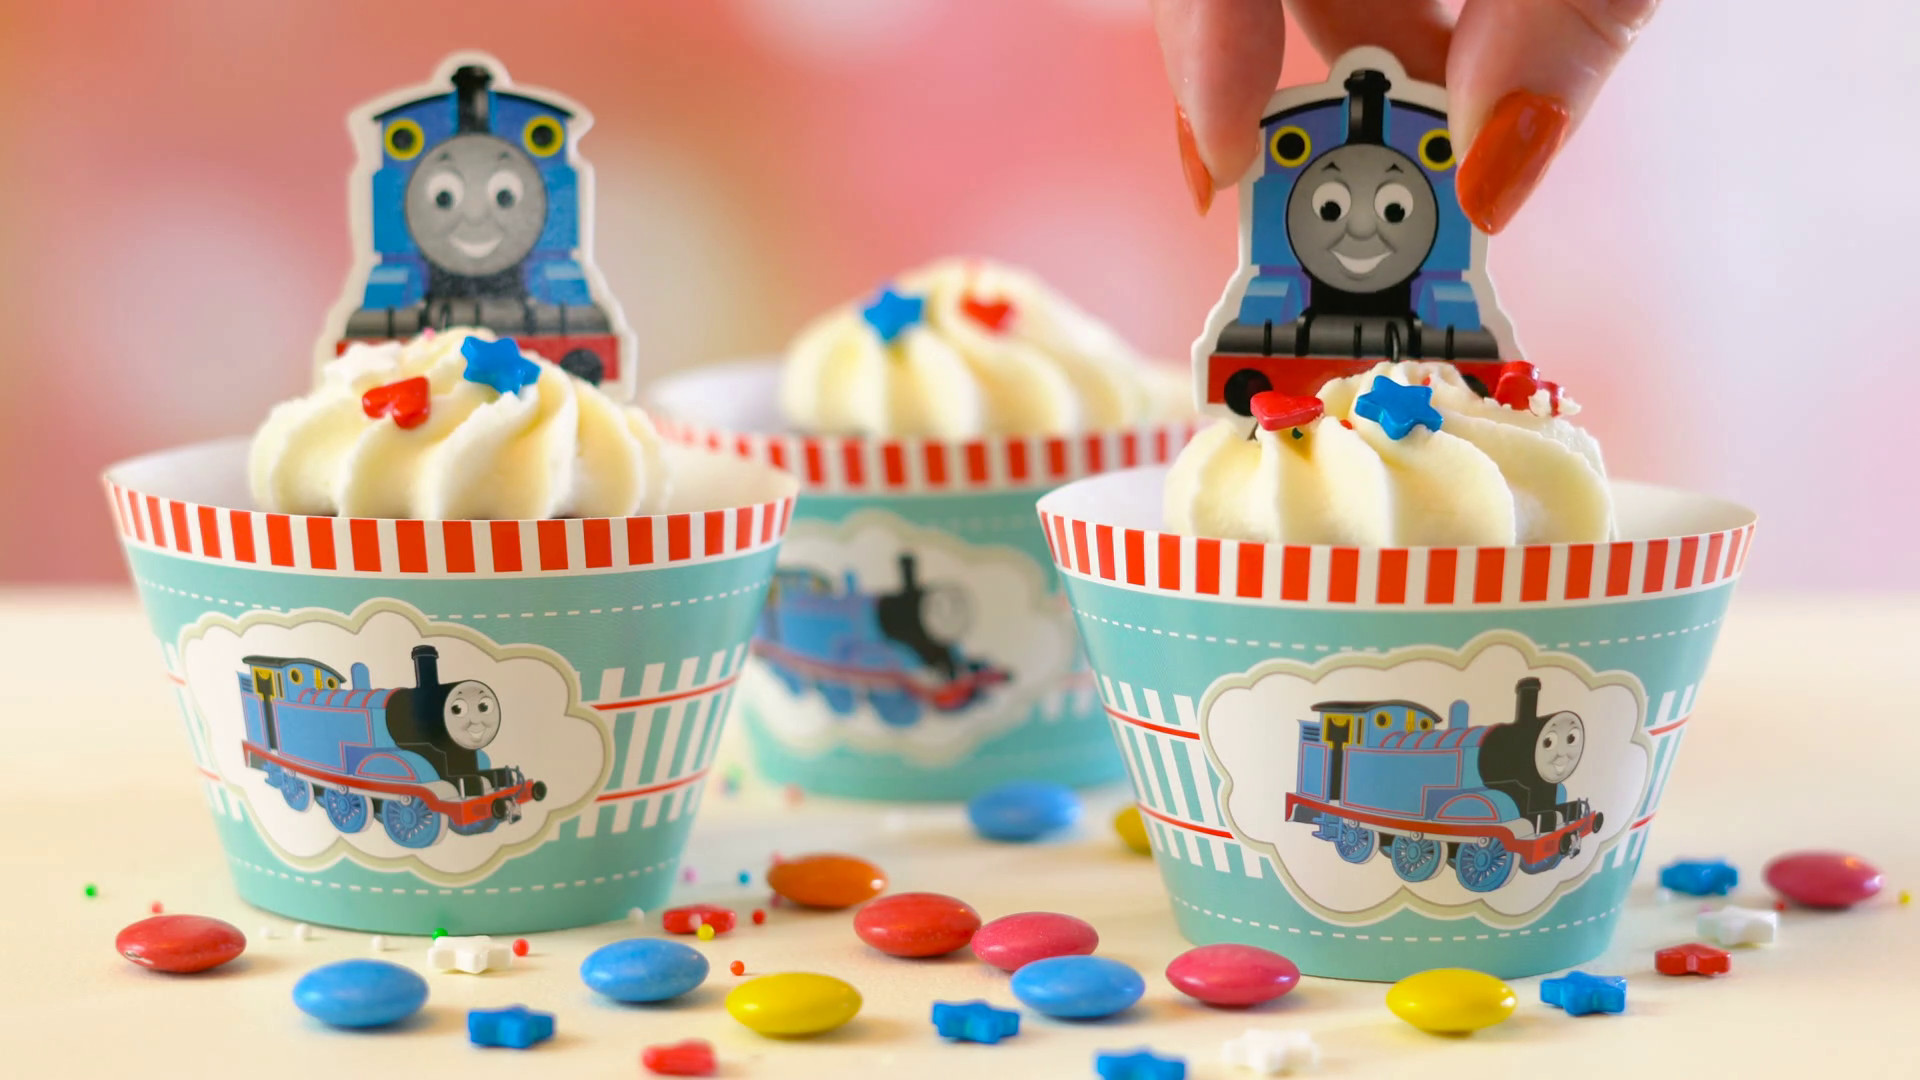 1920x1080 ... children's birthday party Thomas the Tank Engine themed cupcakes, close  up against a colorful pastel background. Stock Video Footage - Storyblocks  Video